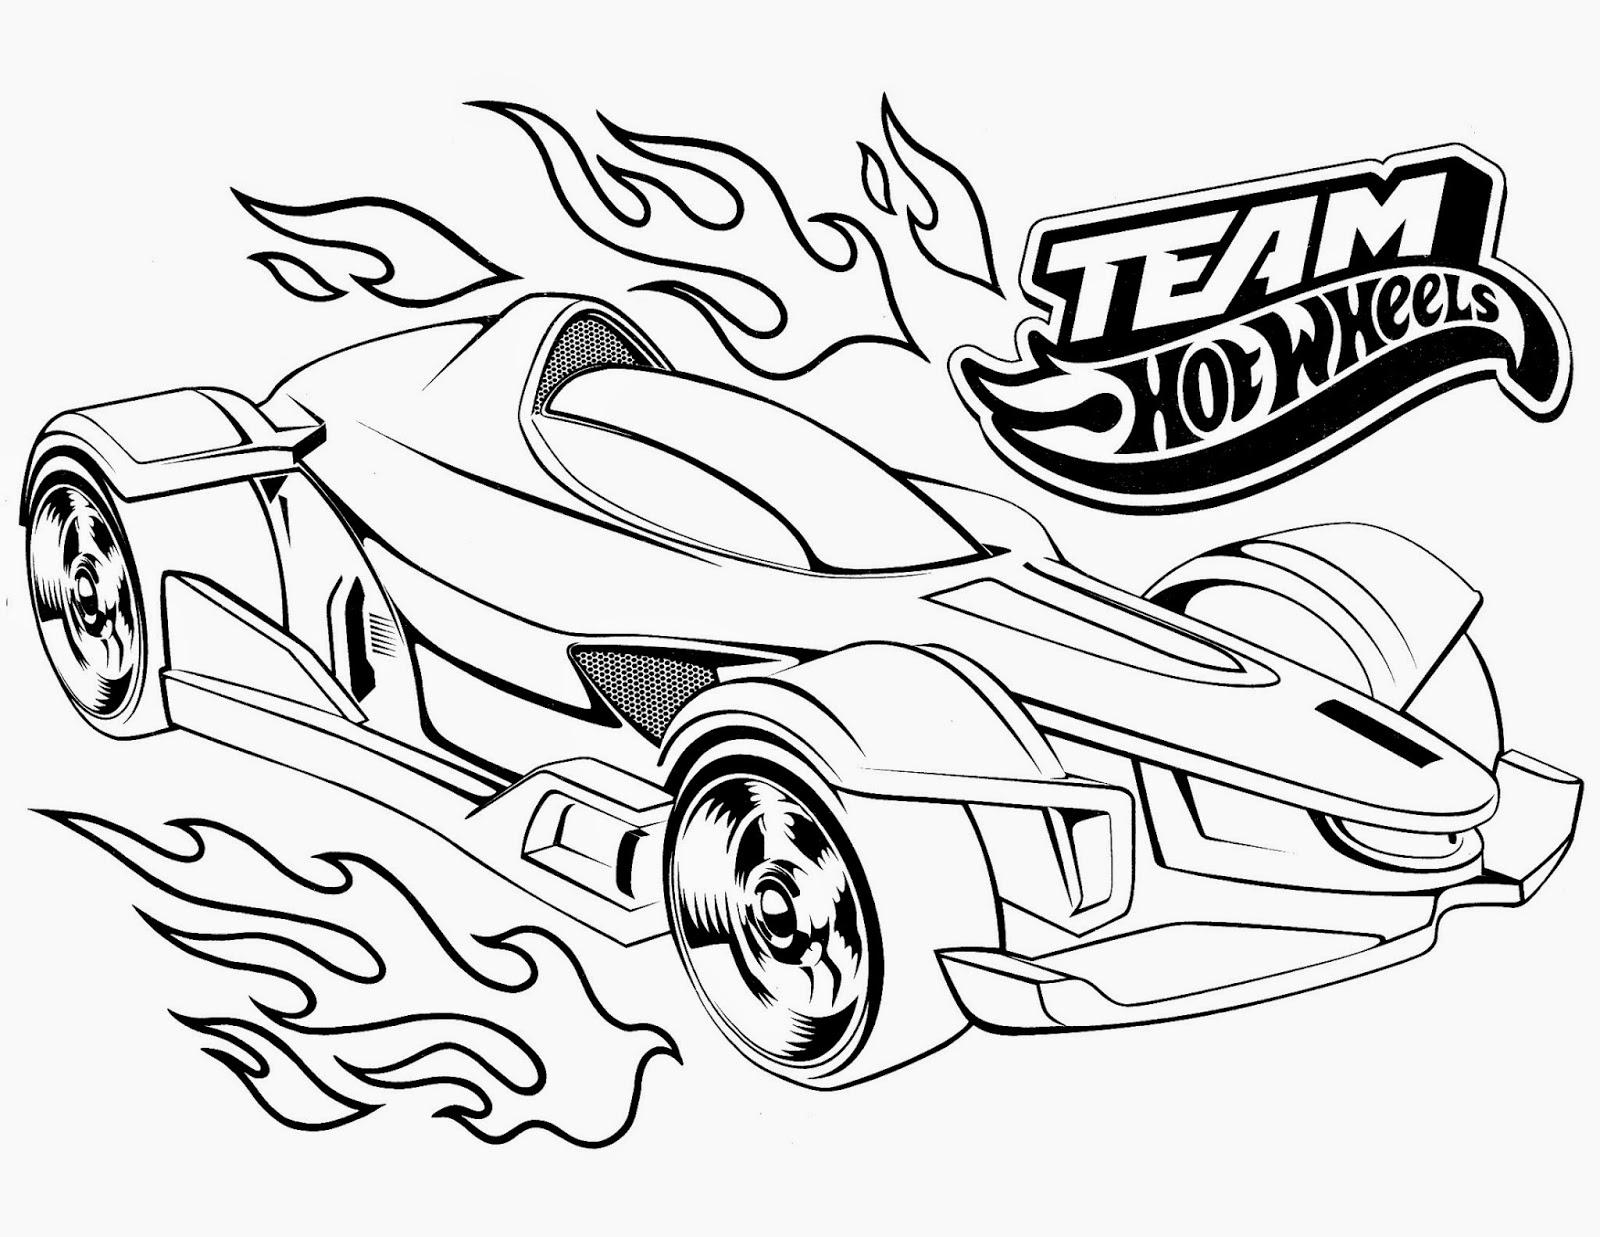 Racing Car Drawing At Getdrawings Com Free For Personal Use Racing